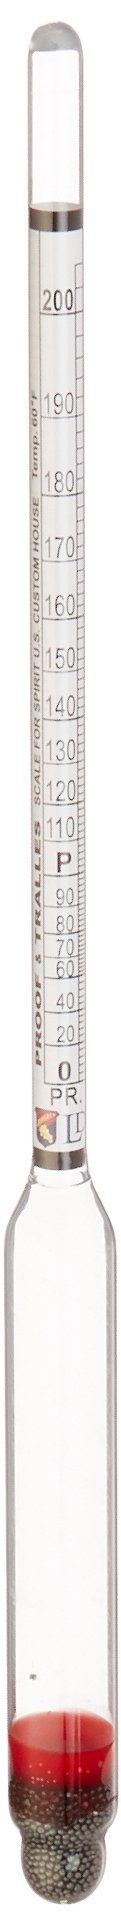 Glass Alcoholmeter/Hydrometer, Proof and Tralles